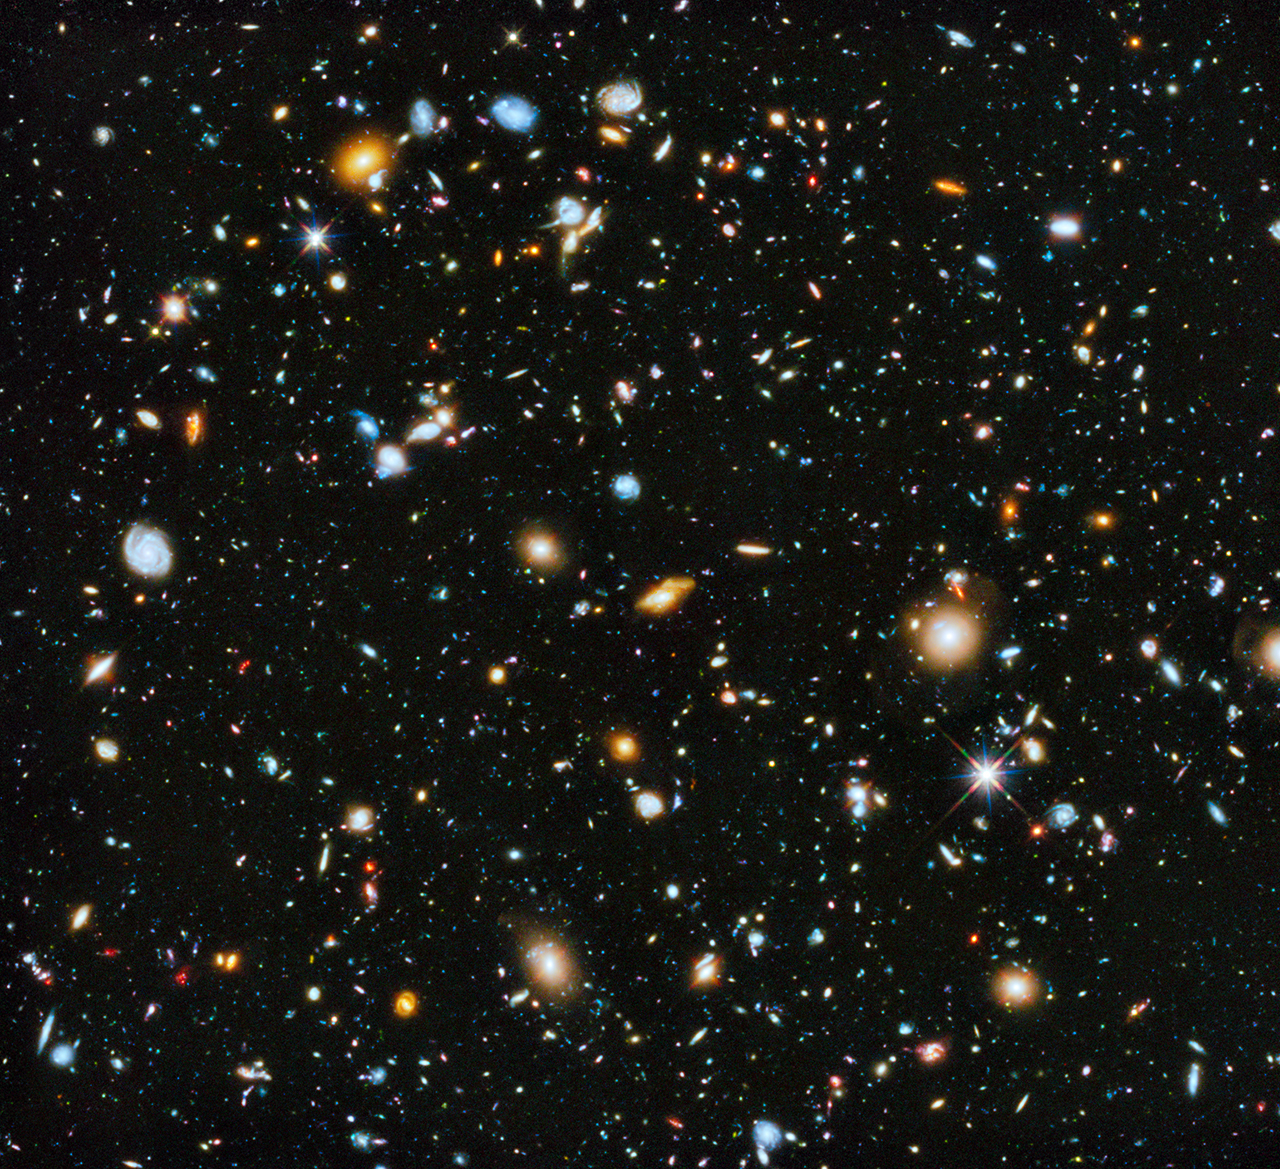 most colorful view of universe captured by hubble space telescope nasa